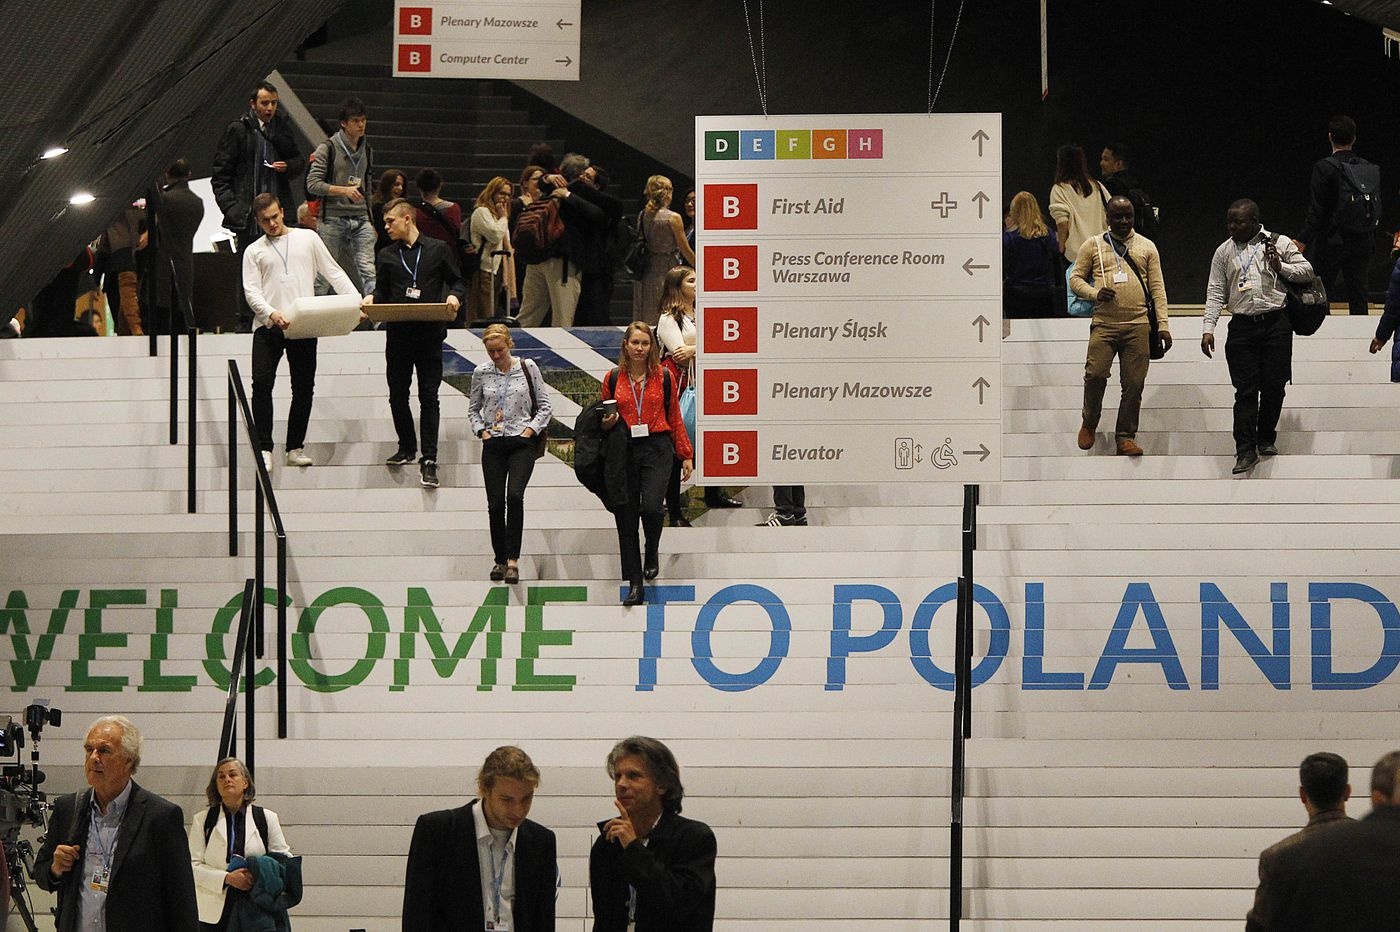 At global climate conference, U.S. promotes fossil fuels